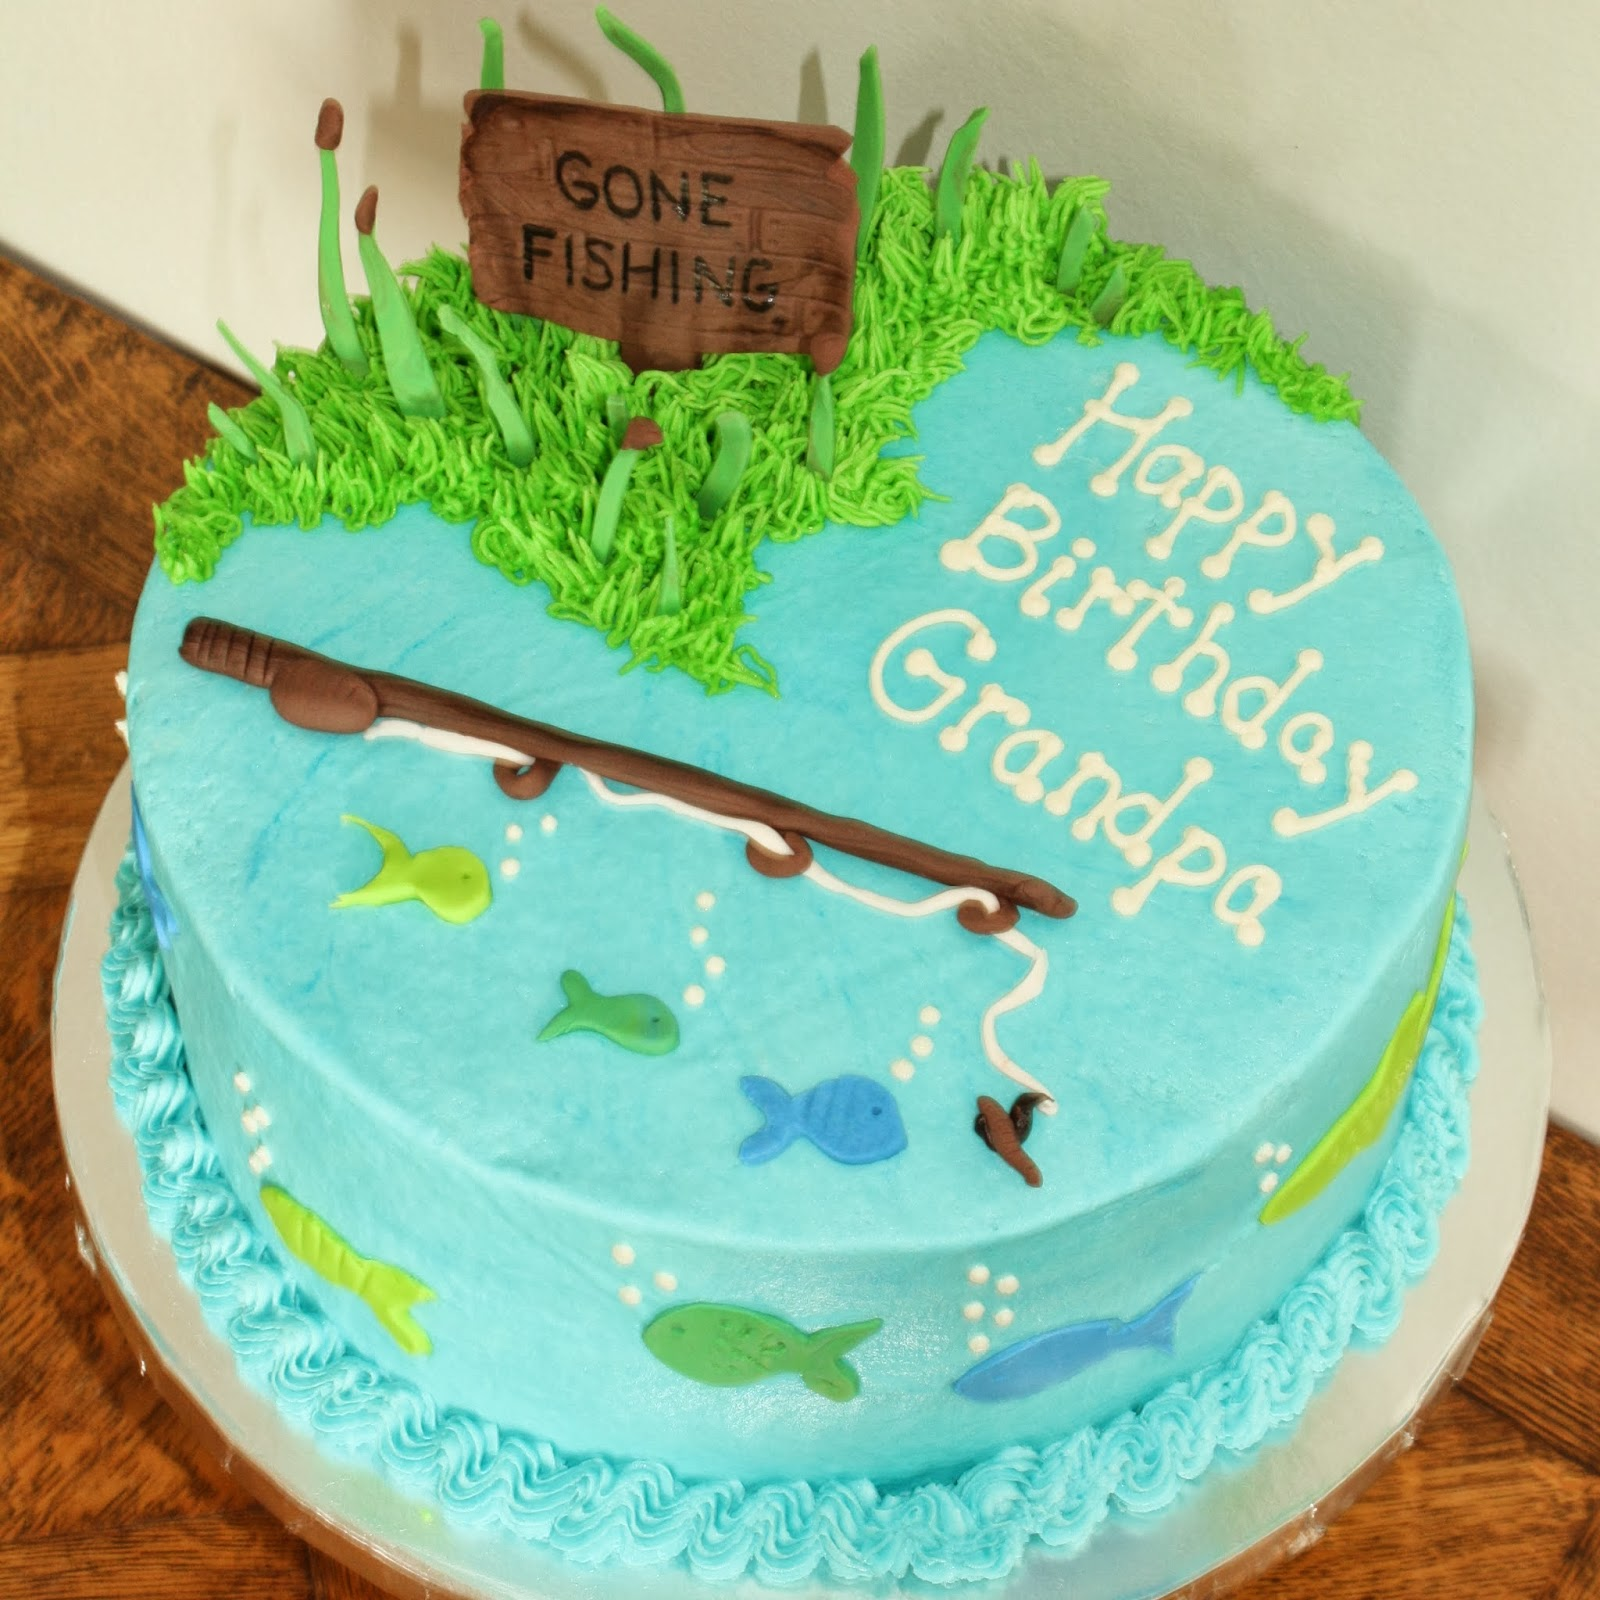 kake gone fishing cake